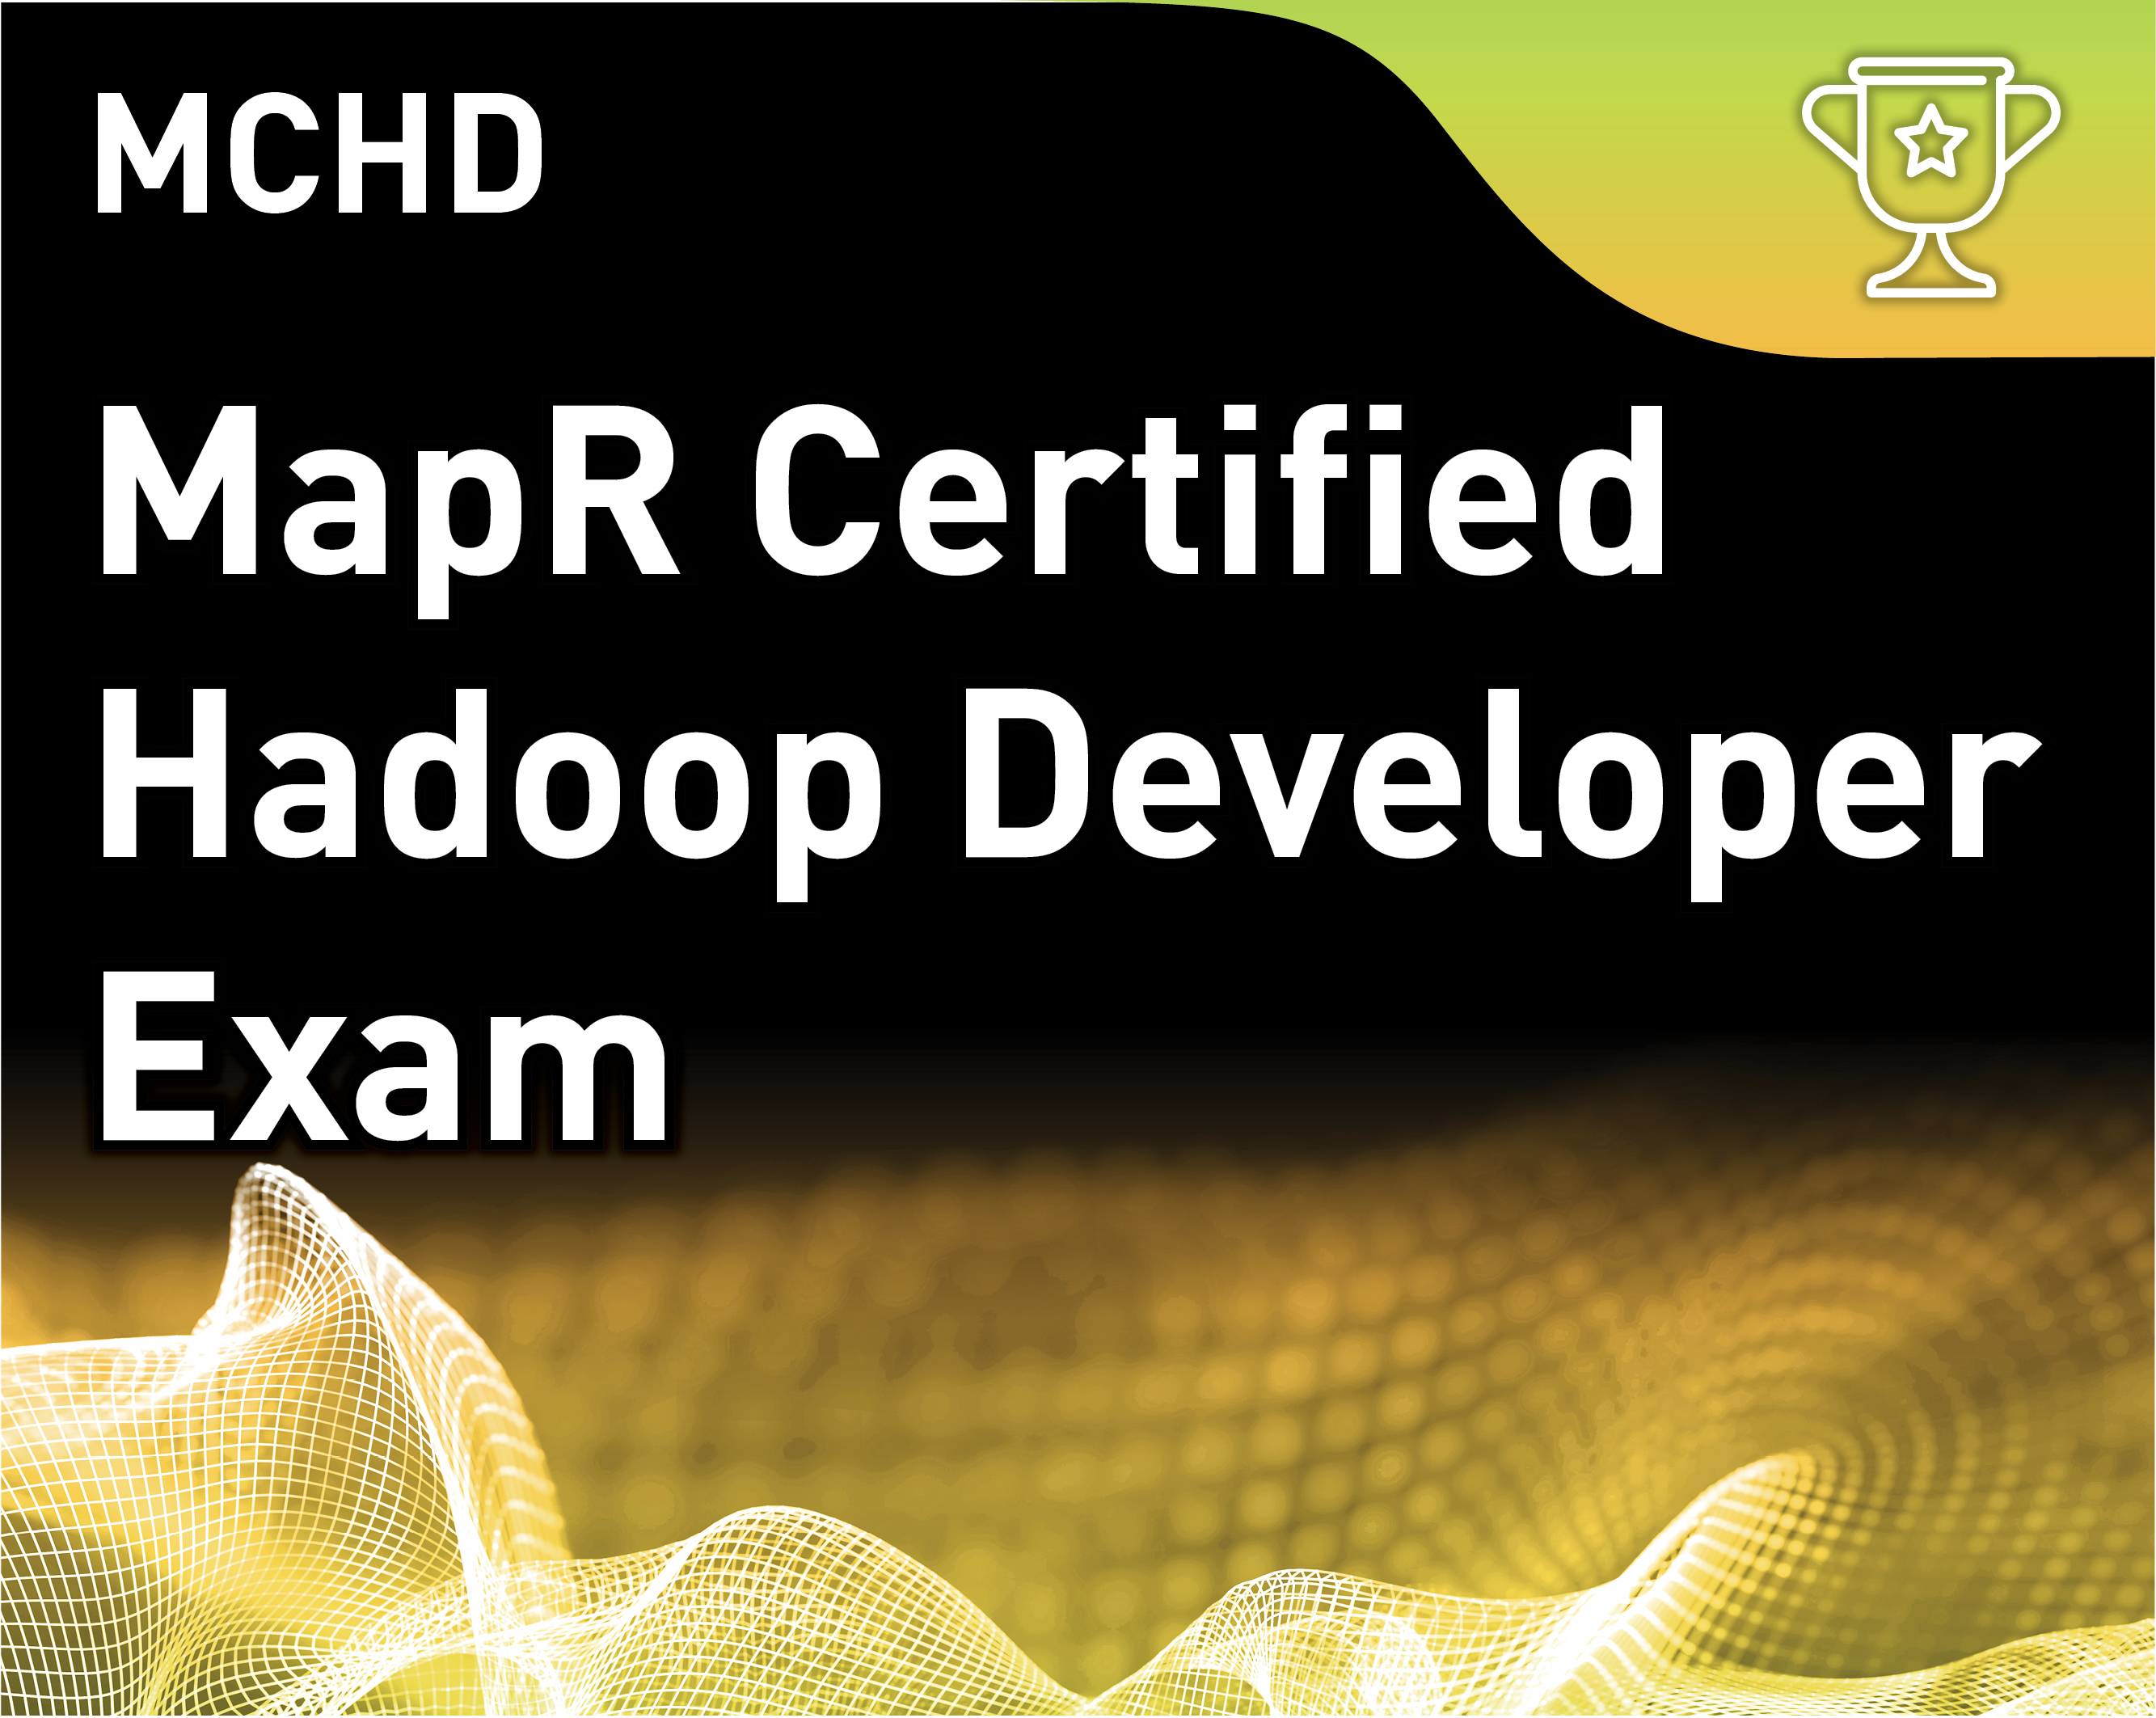 MapR Certified Hadoop Developer v2 (MCHD)